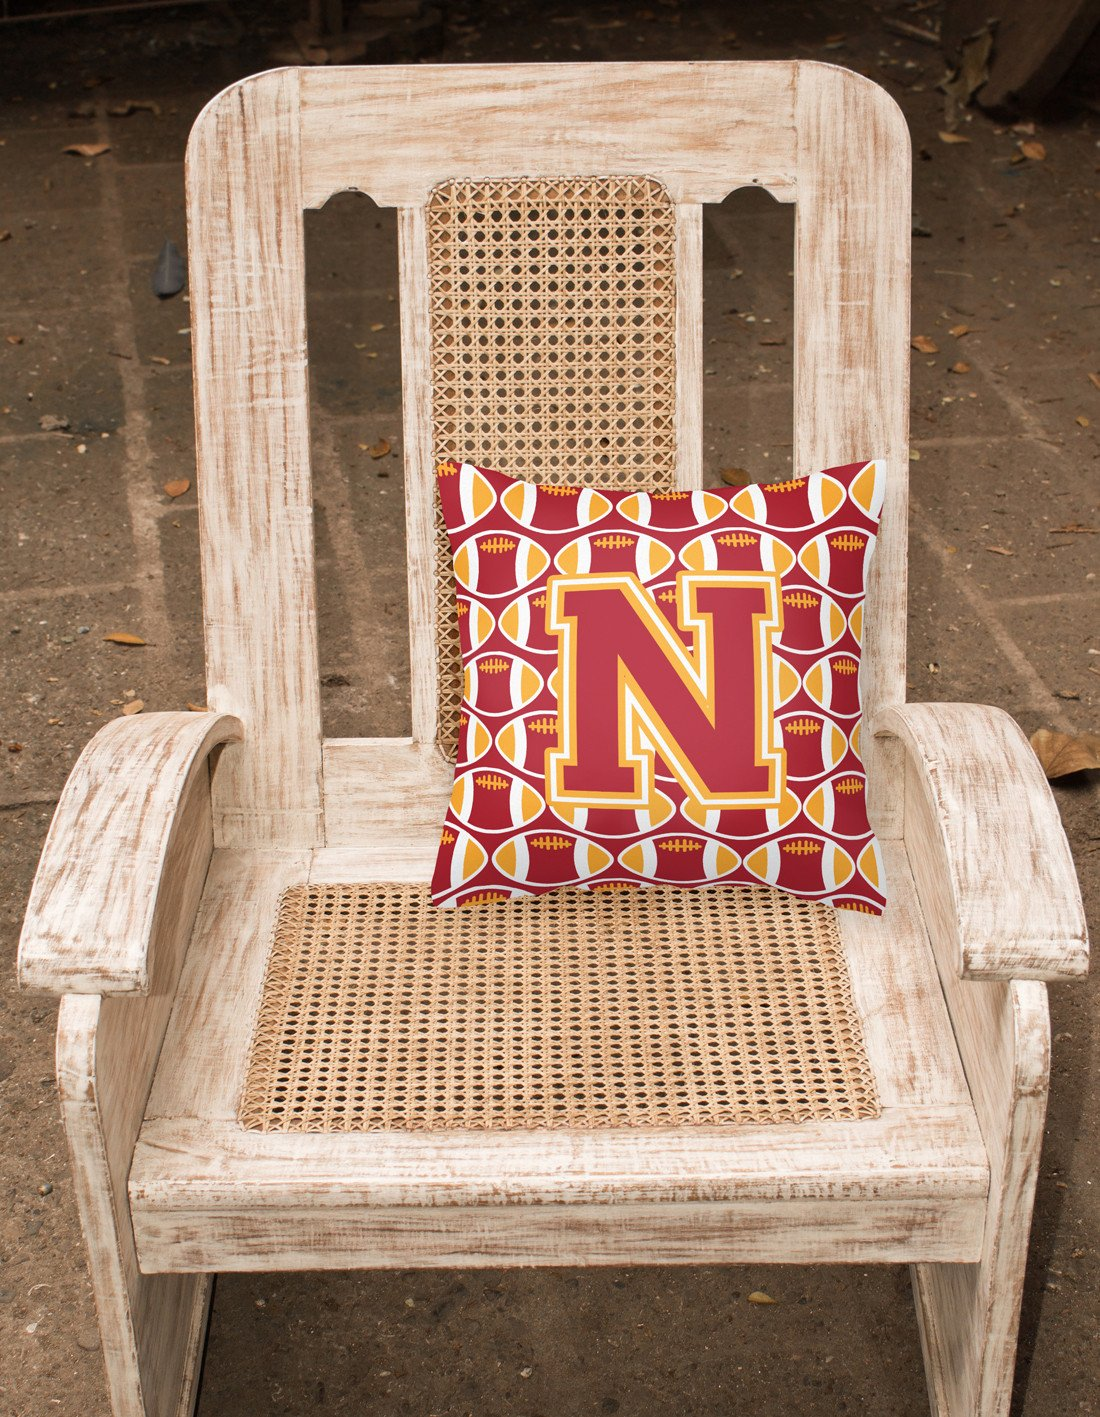 Letter N Football Cardinal and Gold Fabric Decorative Pillow CJ1070-NPW1414 by Caroline's Treasures